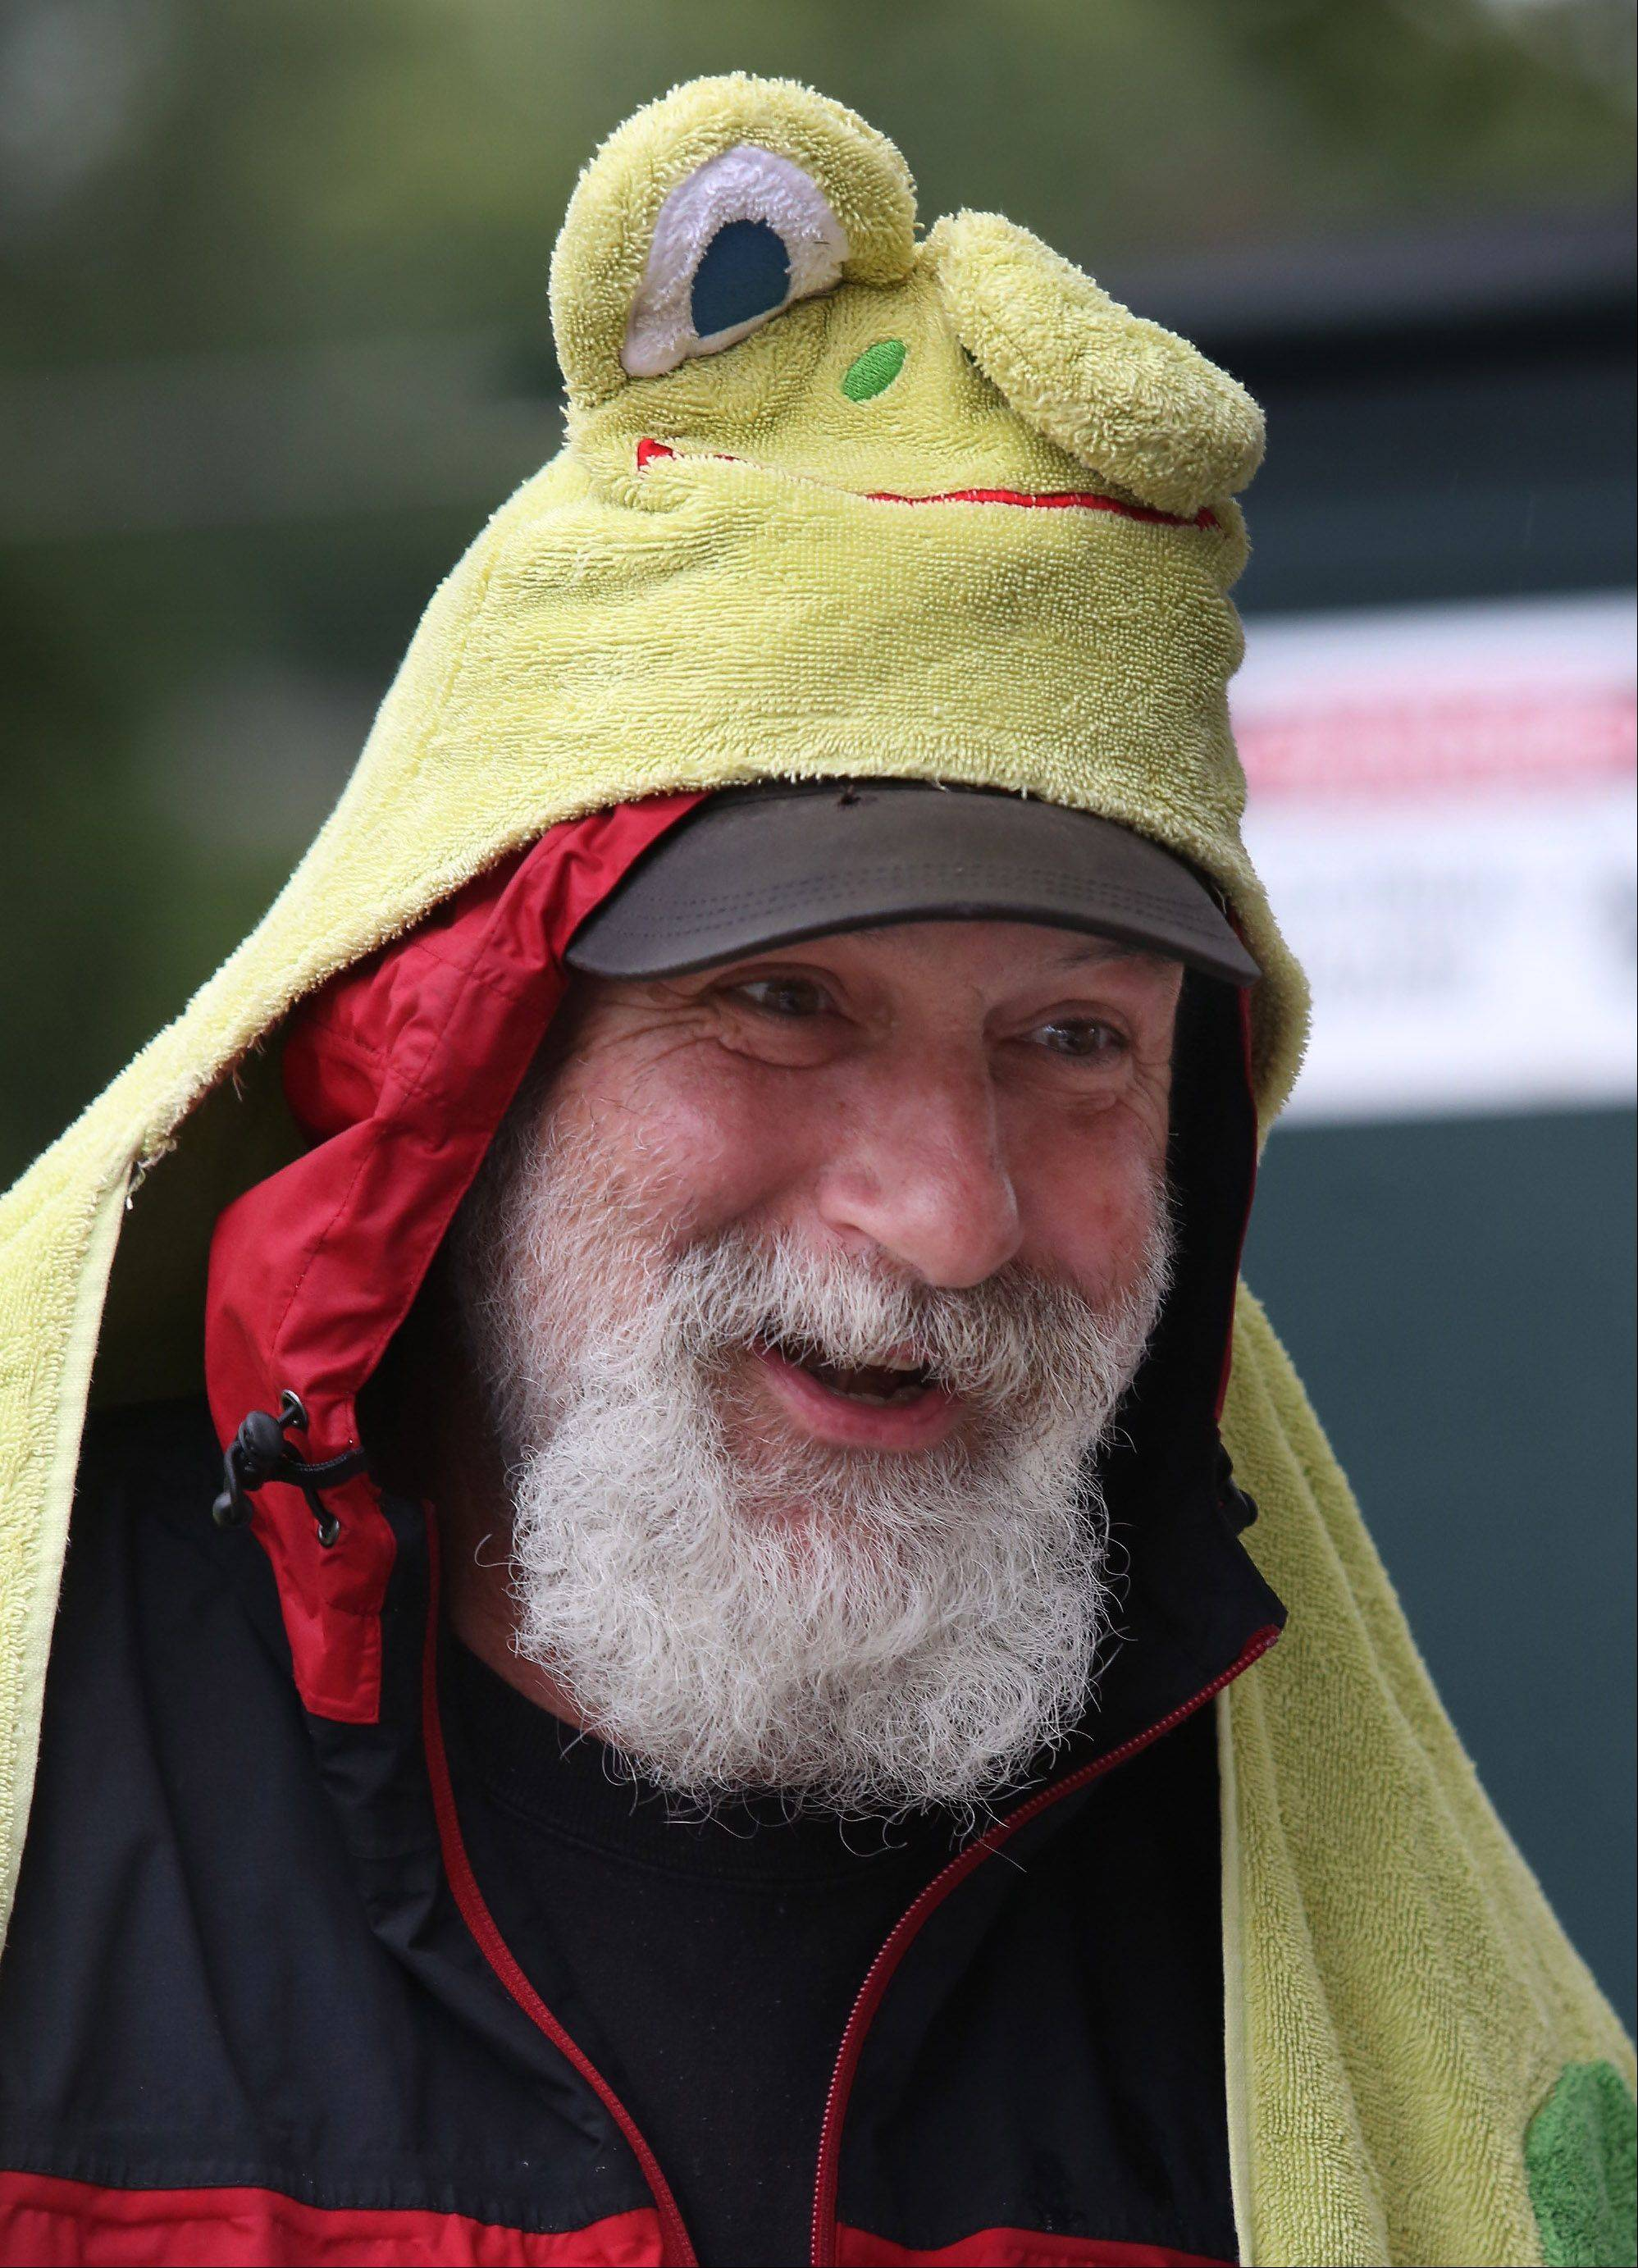 Des Plaines Park District supervisor Ed Kelley wears a frog towel over his head to protect him from the rain during the Des Plaines Fall Fest Sunday at Lake Park. Constant rainfall resulted in sparse crowds to the event.